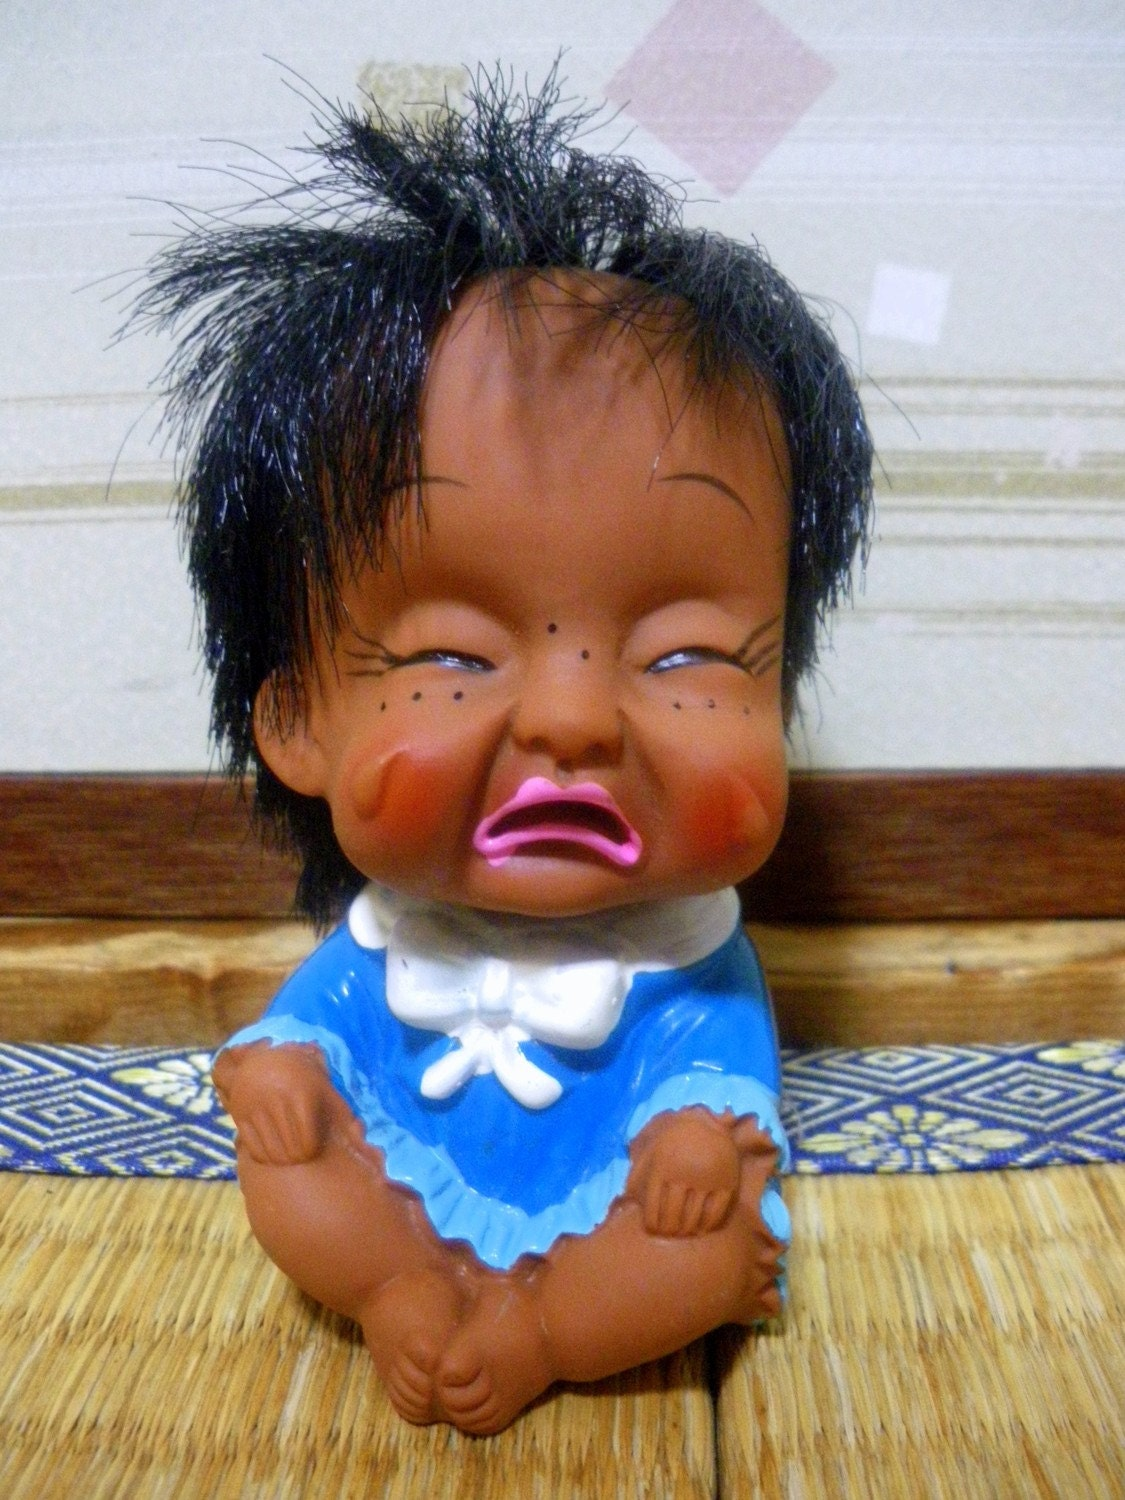 Ugly 1970s Japanese Baby Doll